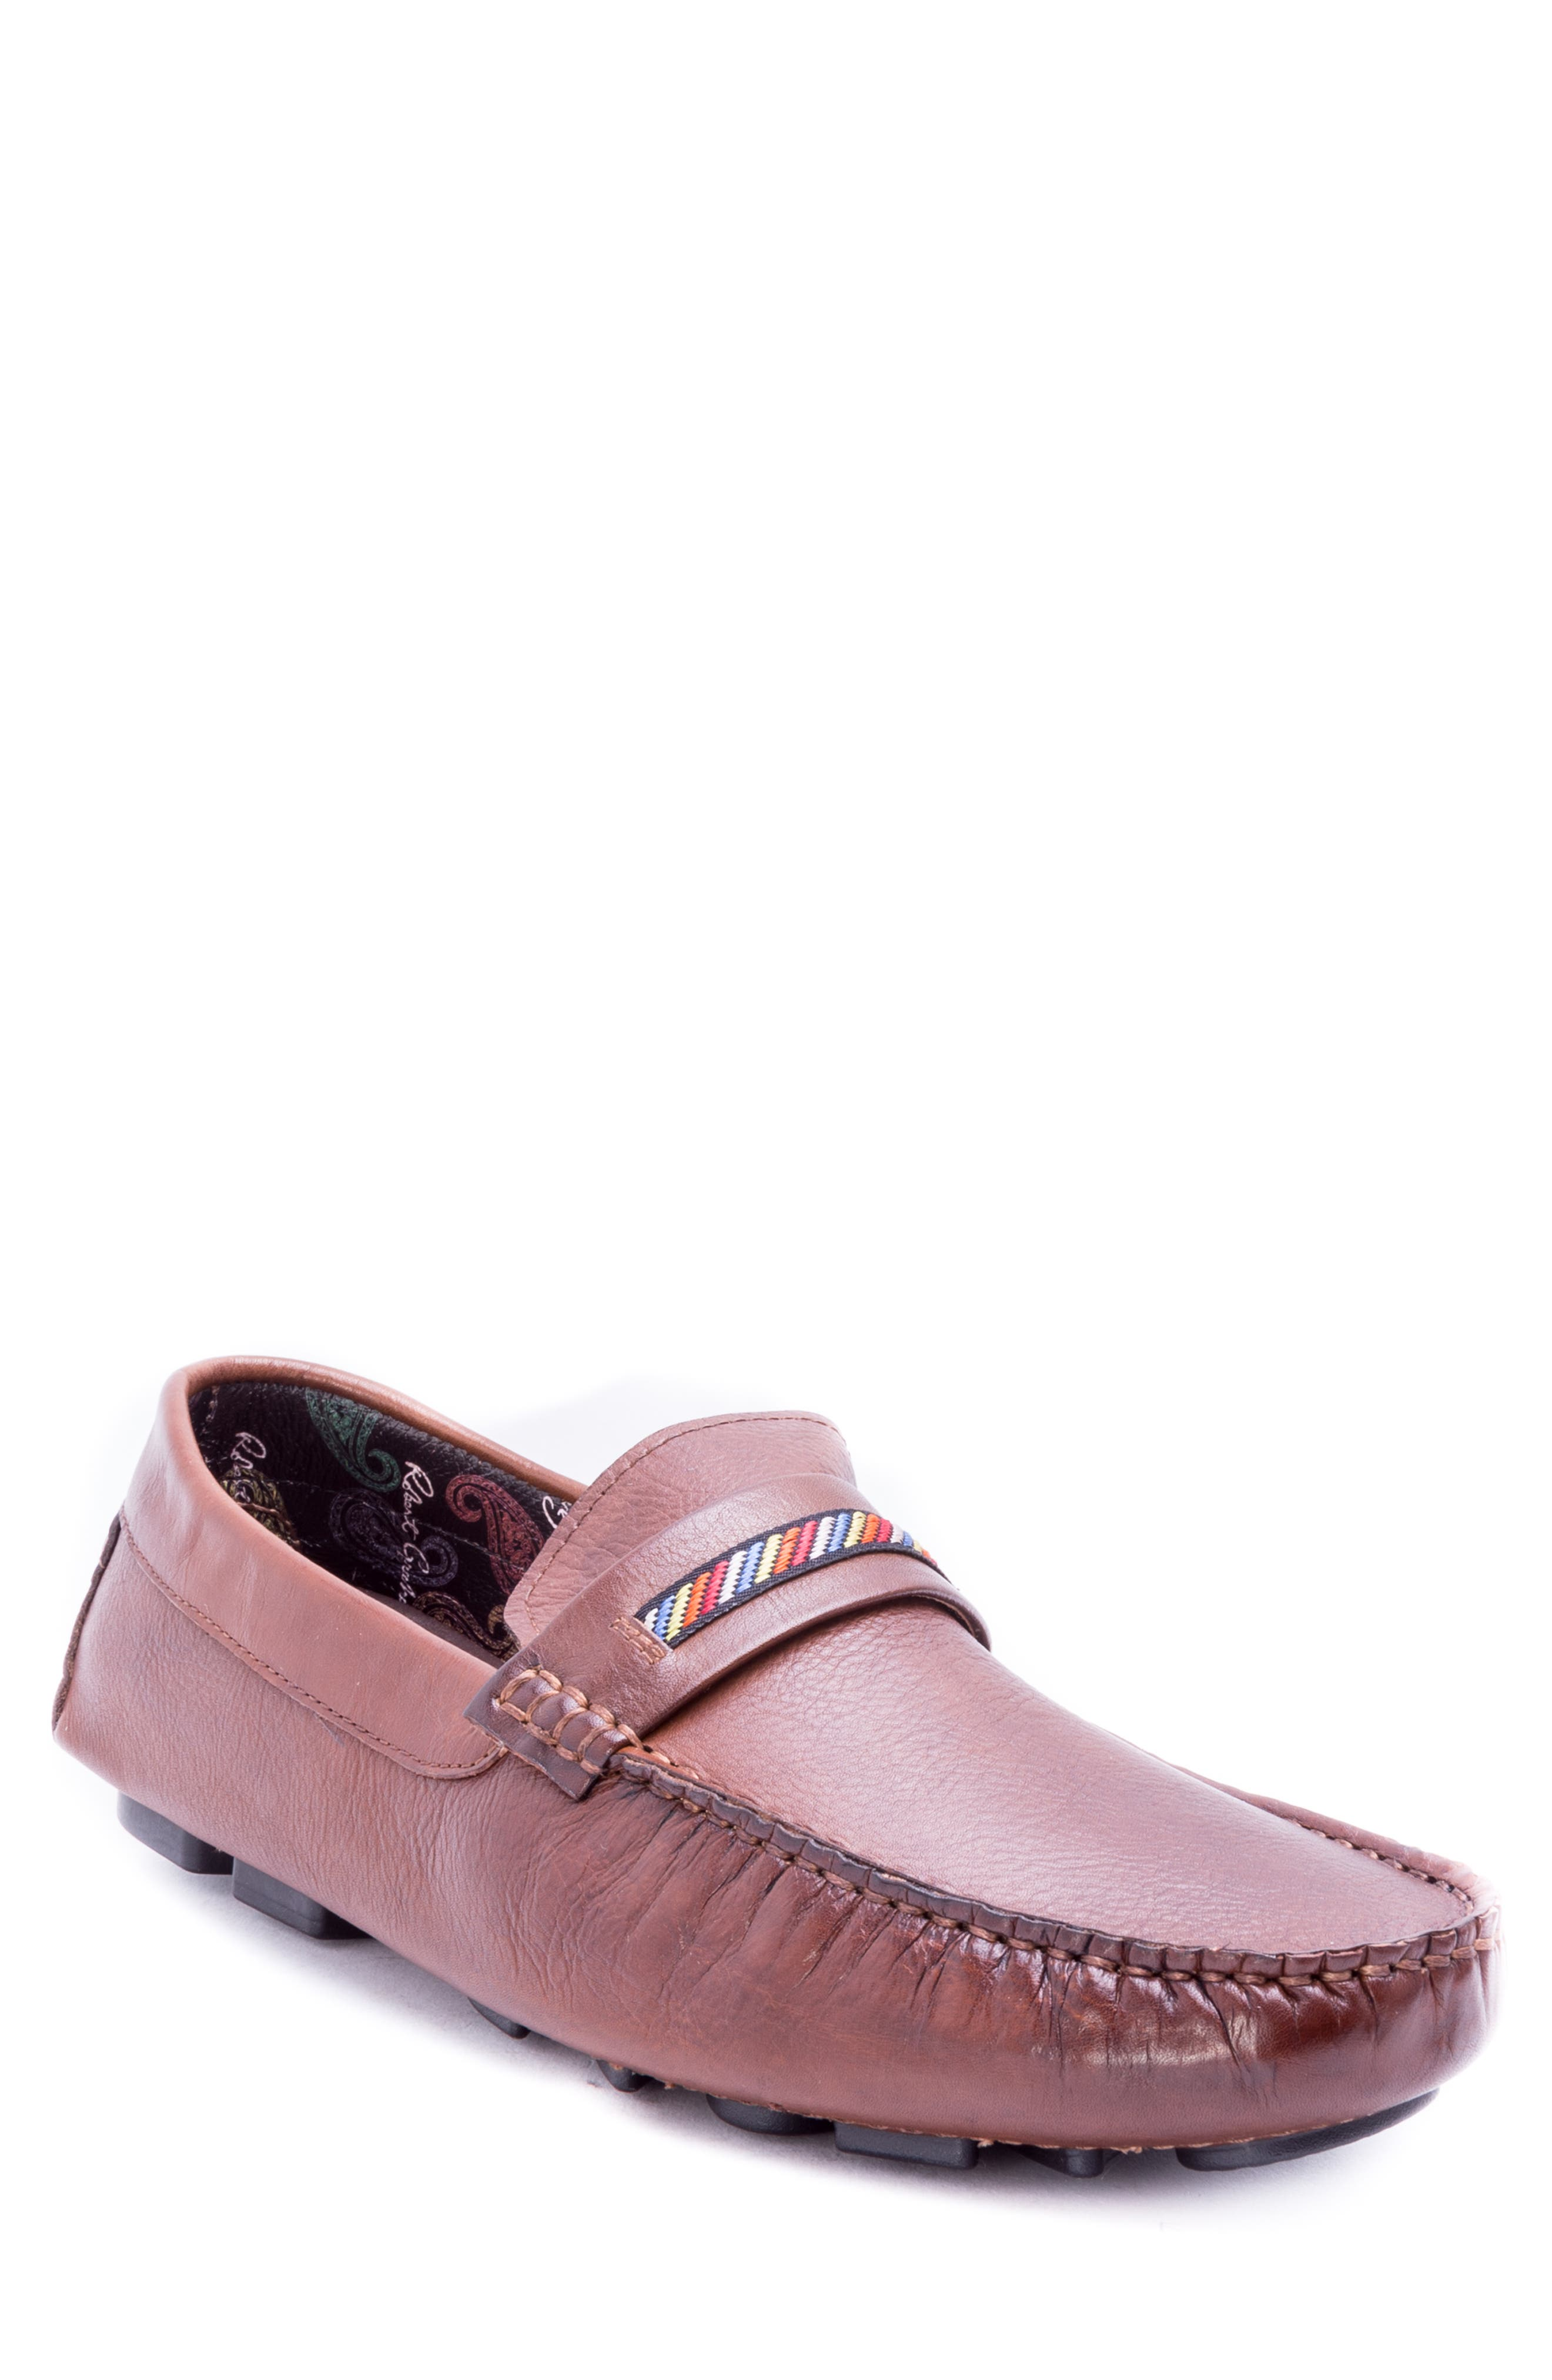 Hart Driving Moccasin,                             Main thumbnail 1, color,                             COGNAC LEATHER